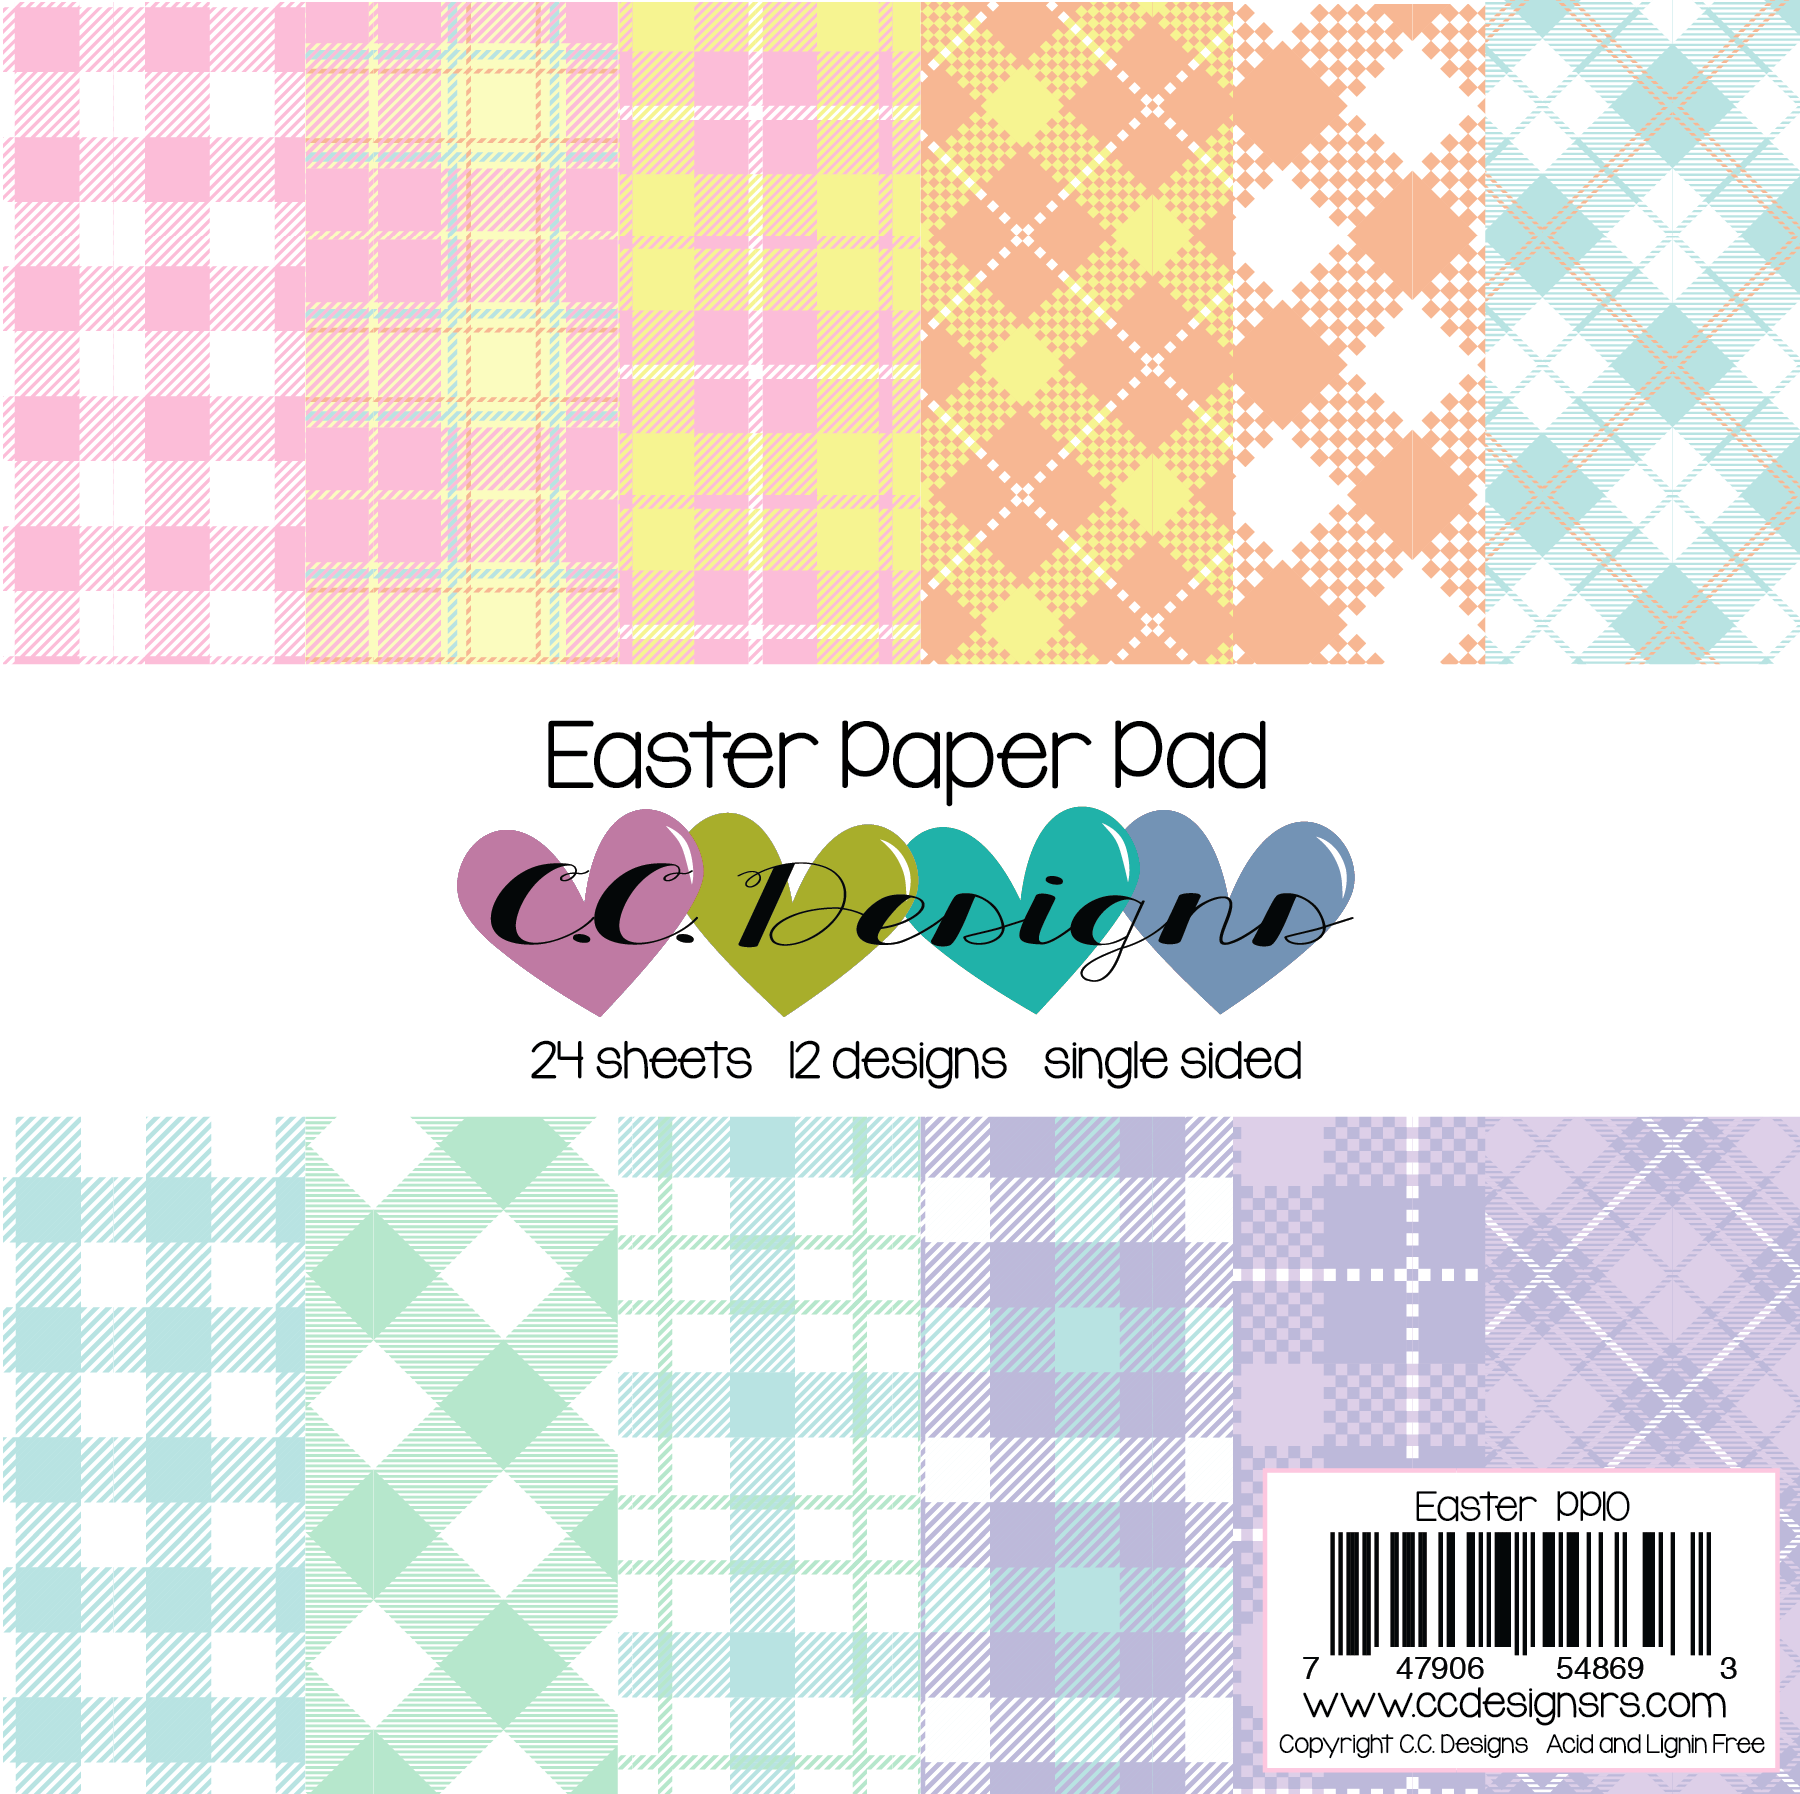 *NEW* - CC Designs - Easter Paper Pad